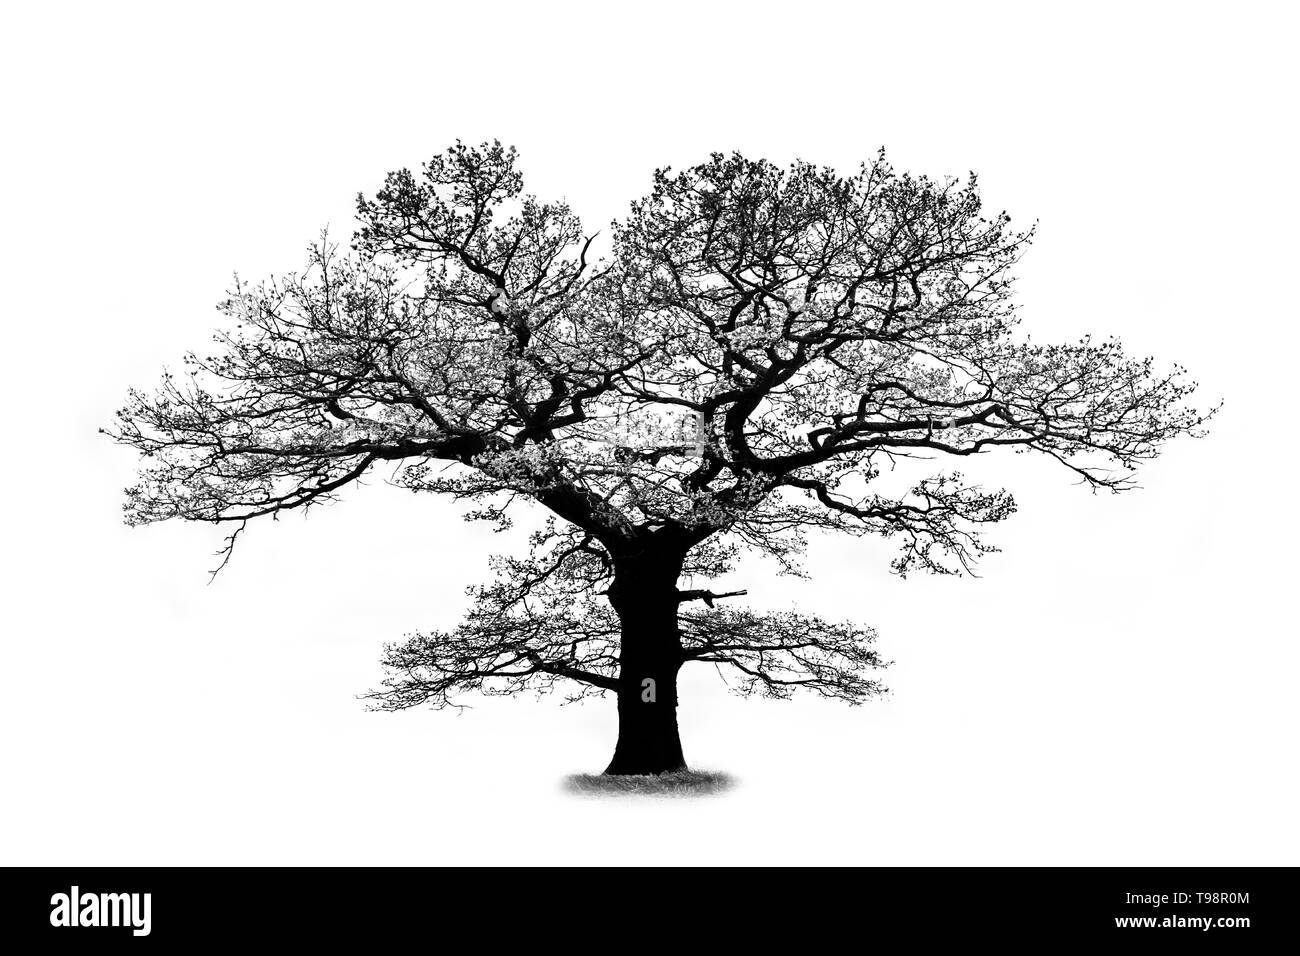 Oak tree silhouette isolated on white background with a beautiful curved branches that looks like a lungs Stock Photo